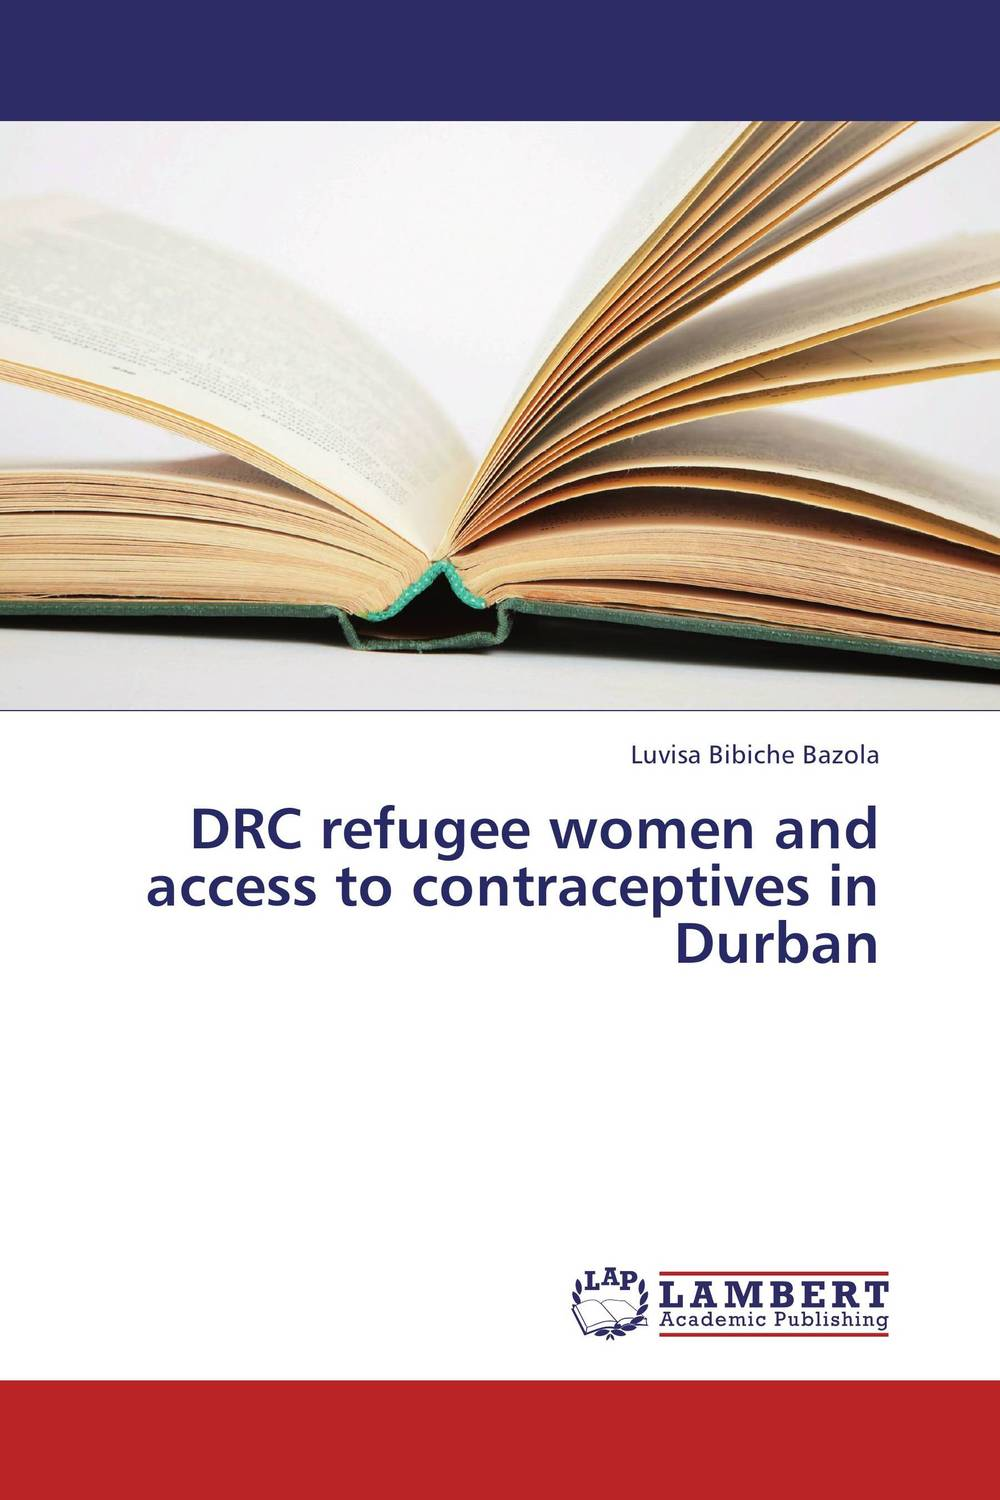 DRC refugee women and access to contraceptives in Durban belousov a security features of banknotes and other documents methods of authentication manual денежные билеты бланки ценных бумаг и документов